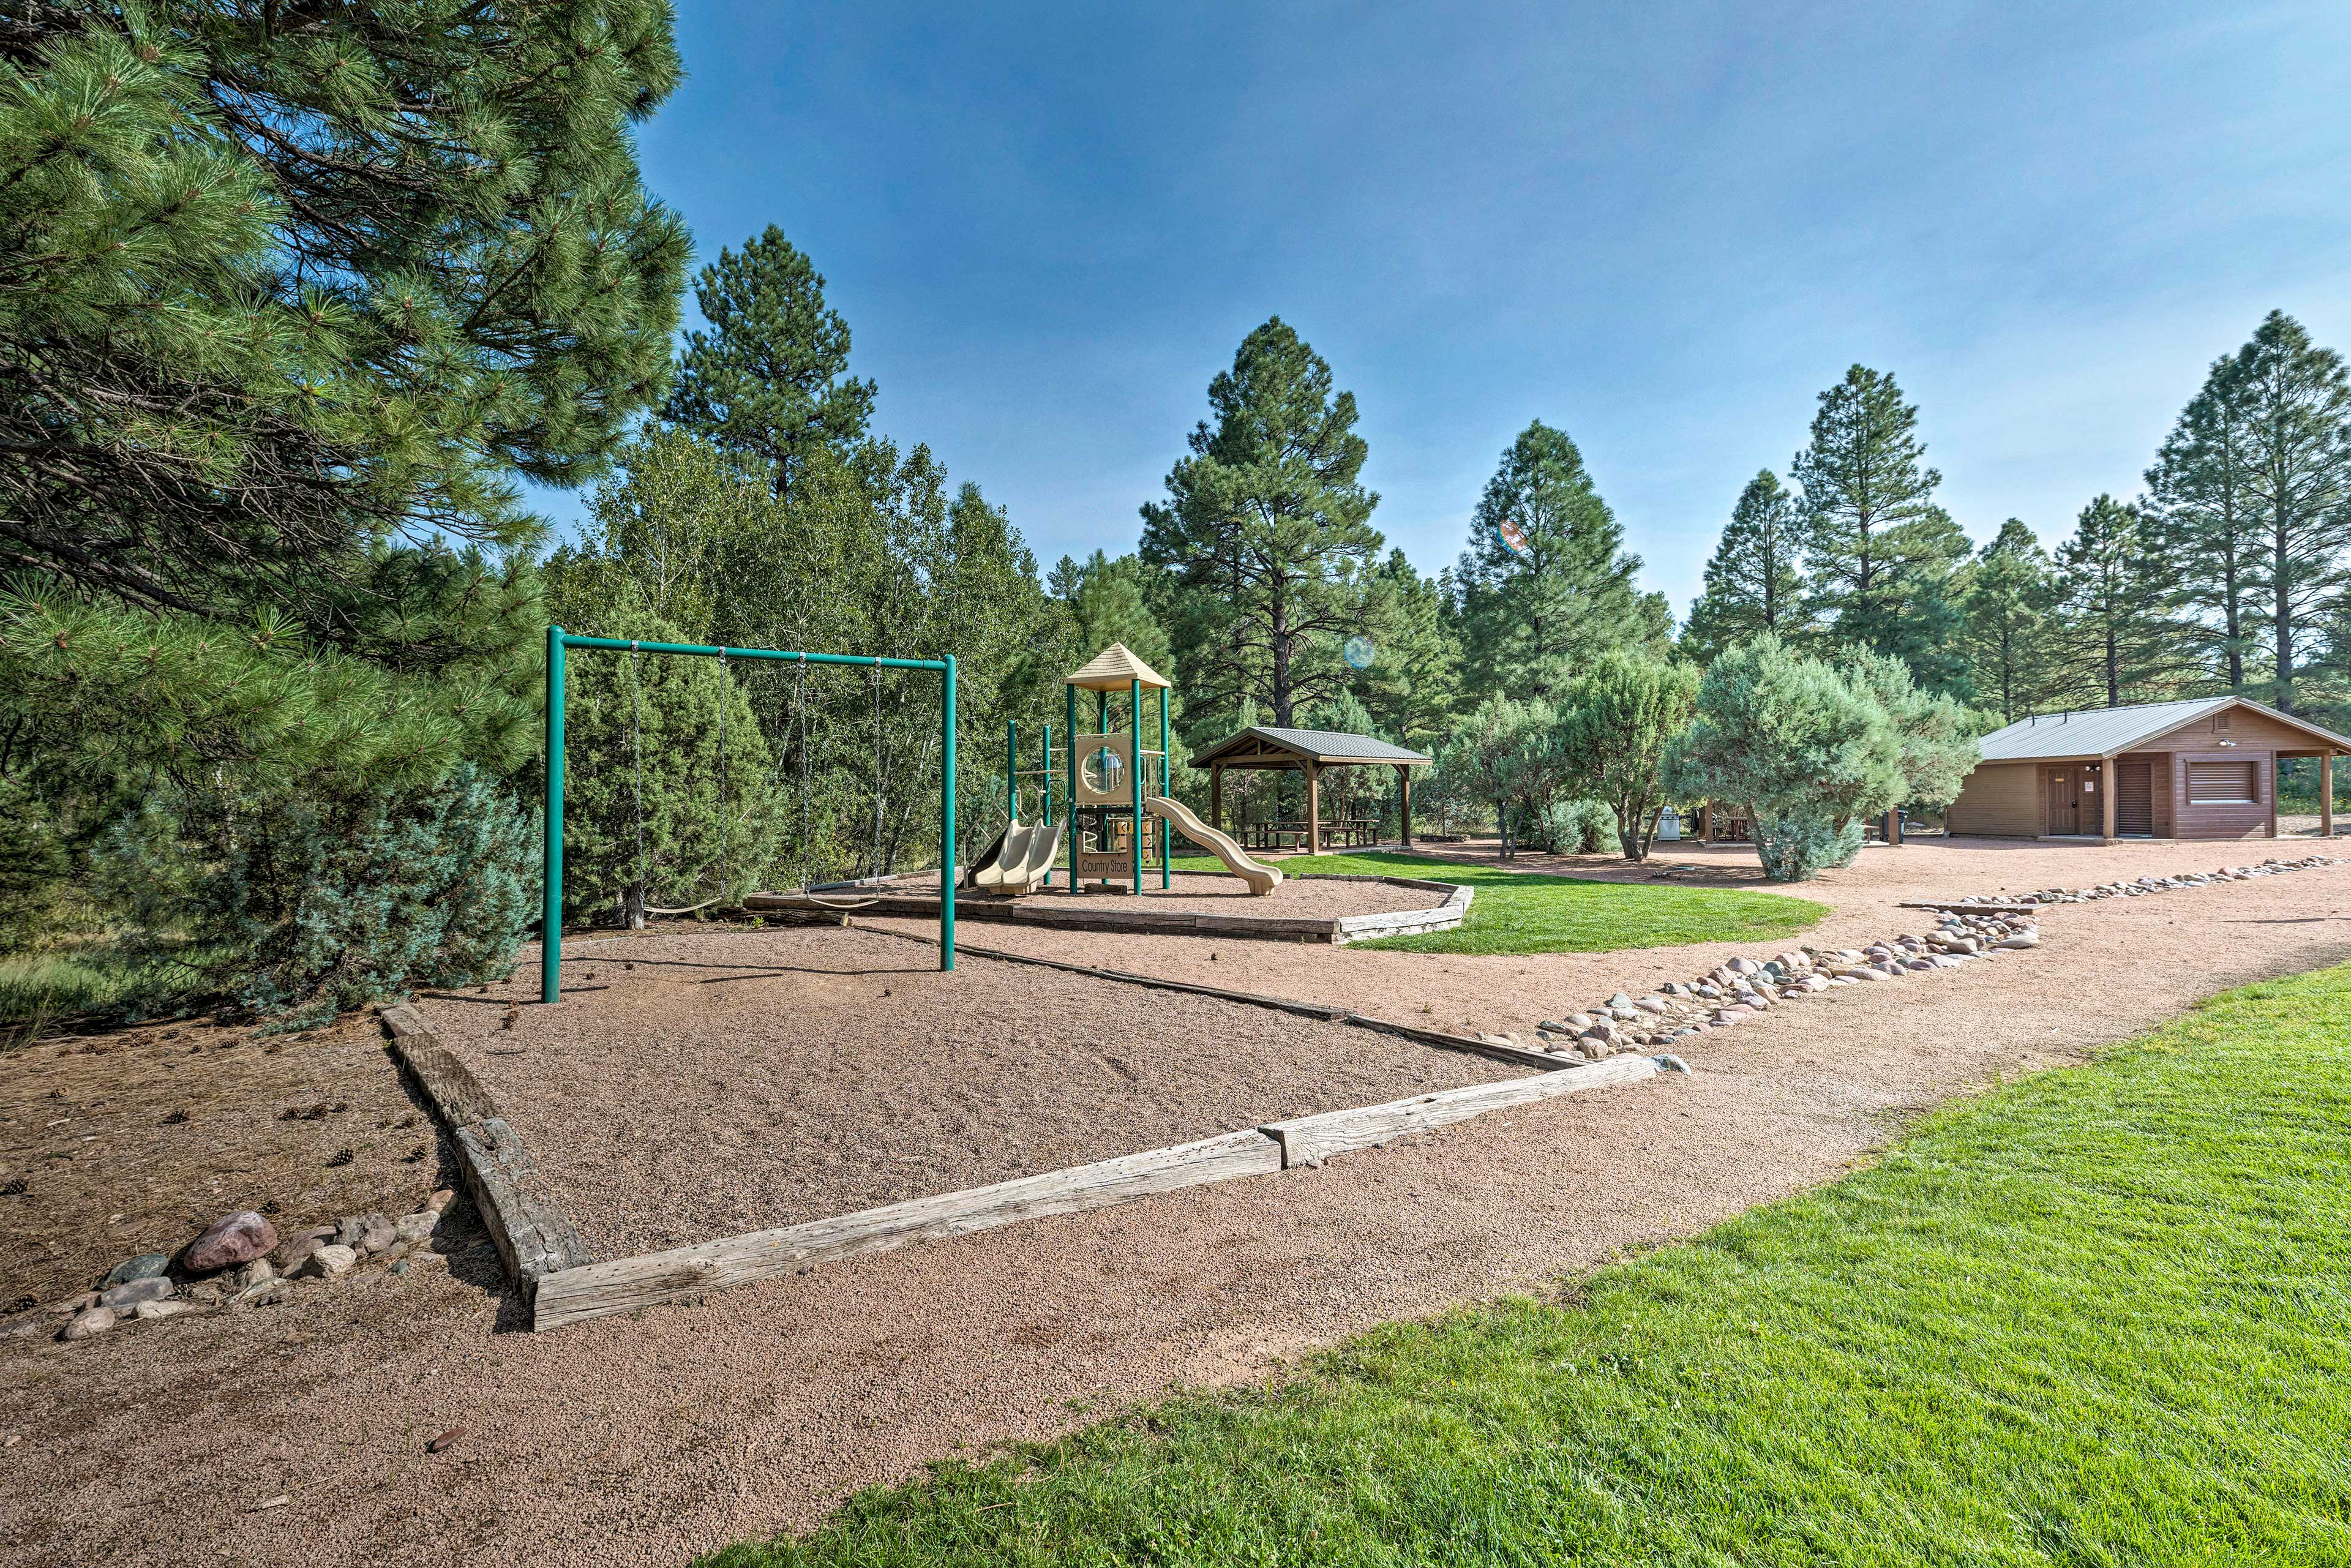 Let the kids have fun on the swing set and jungle gym.